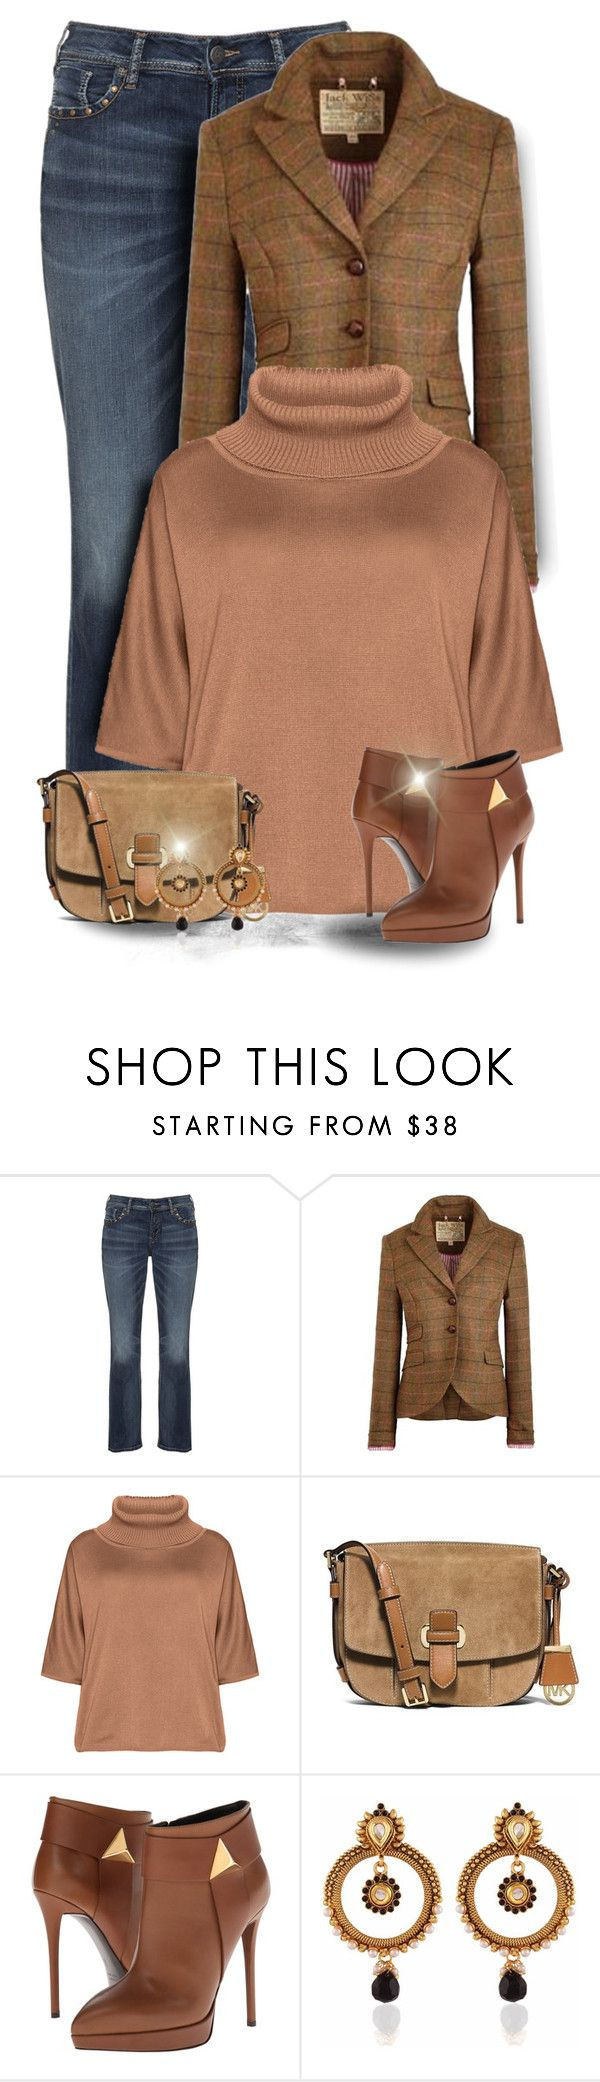 """Casual Brown"" by majezy ❤ liked on Polyvore featuring Silver Jeans Co., Jack Wills, Isolde Roth, MICHAEL Michael Kors and Giuseppe Zanotti"